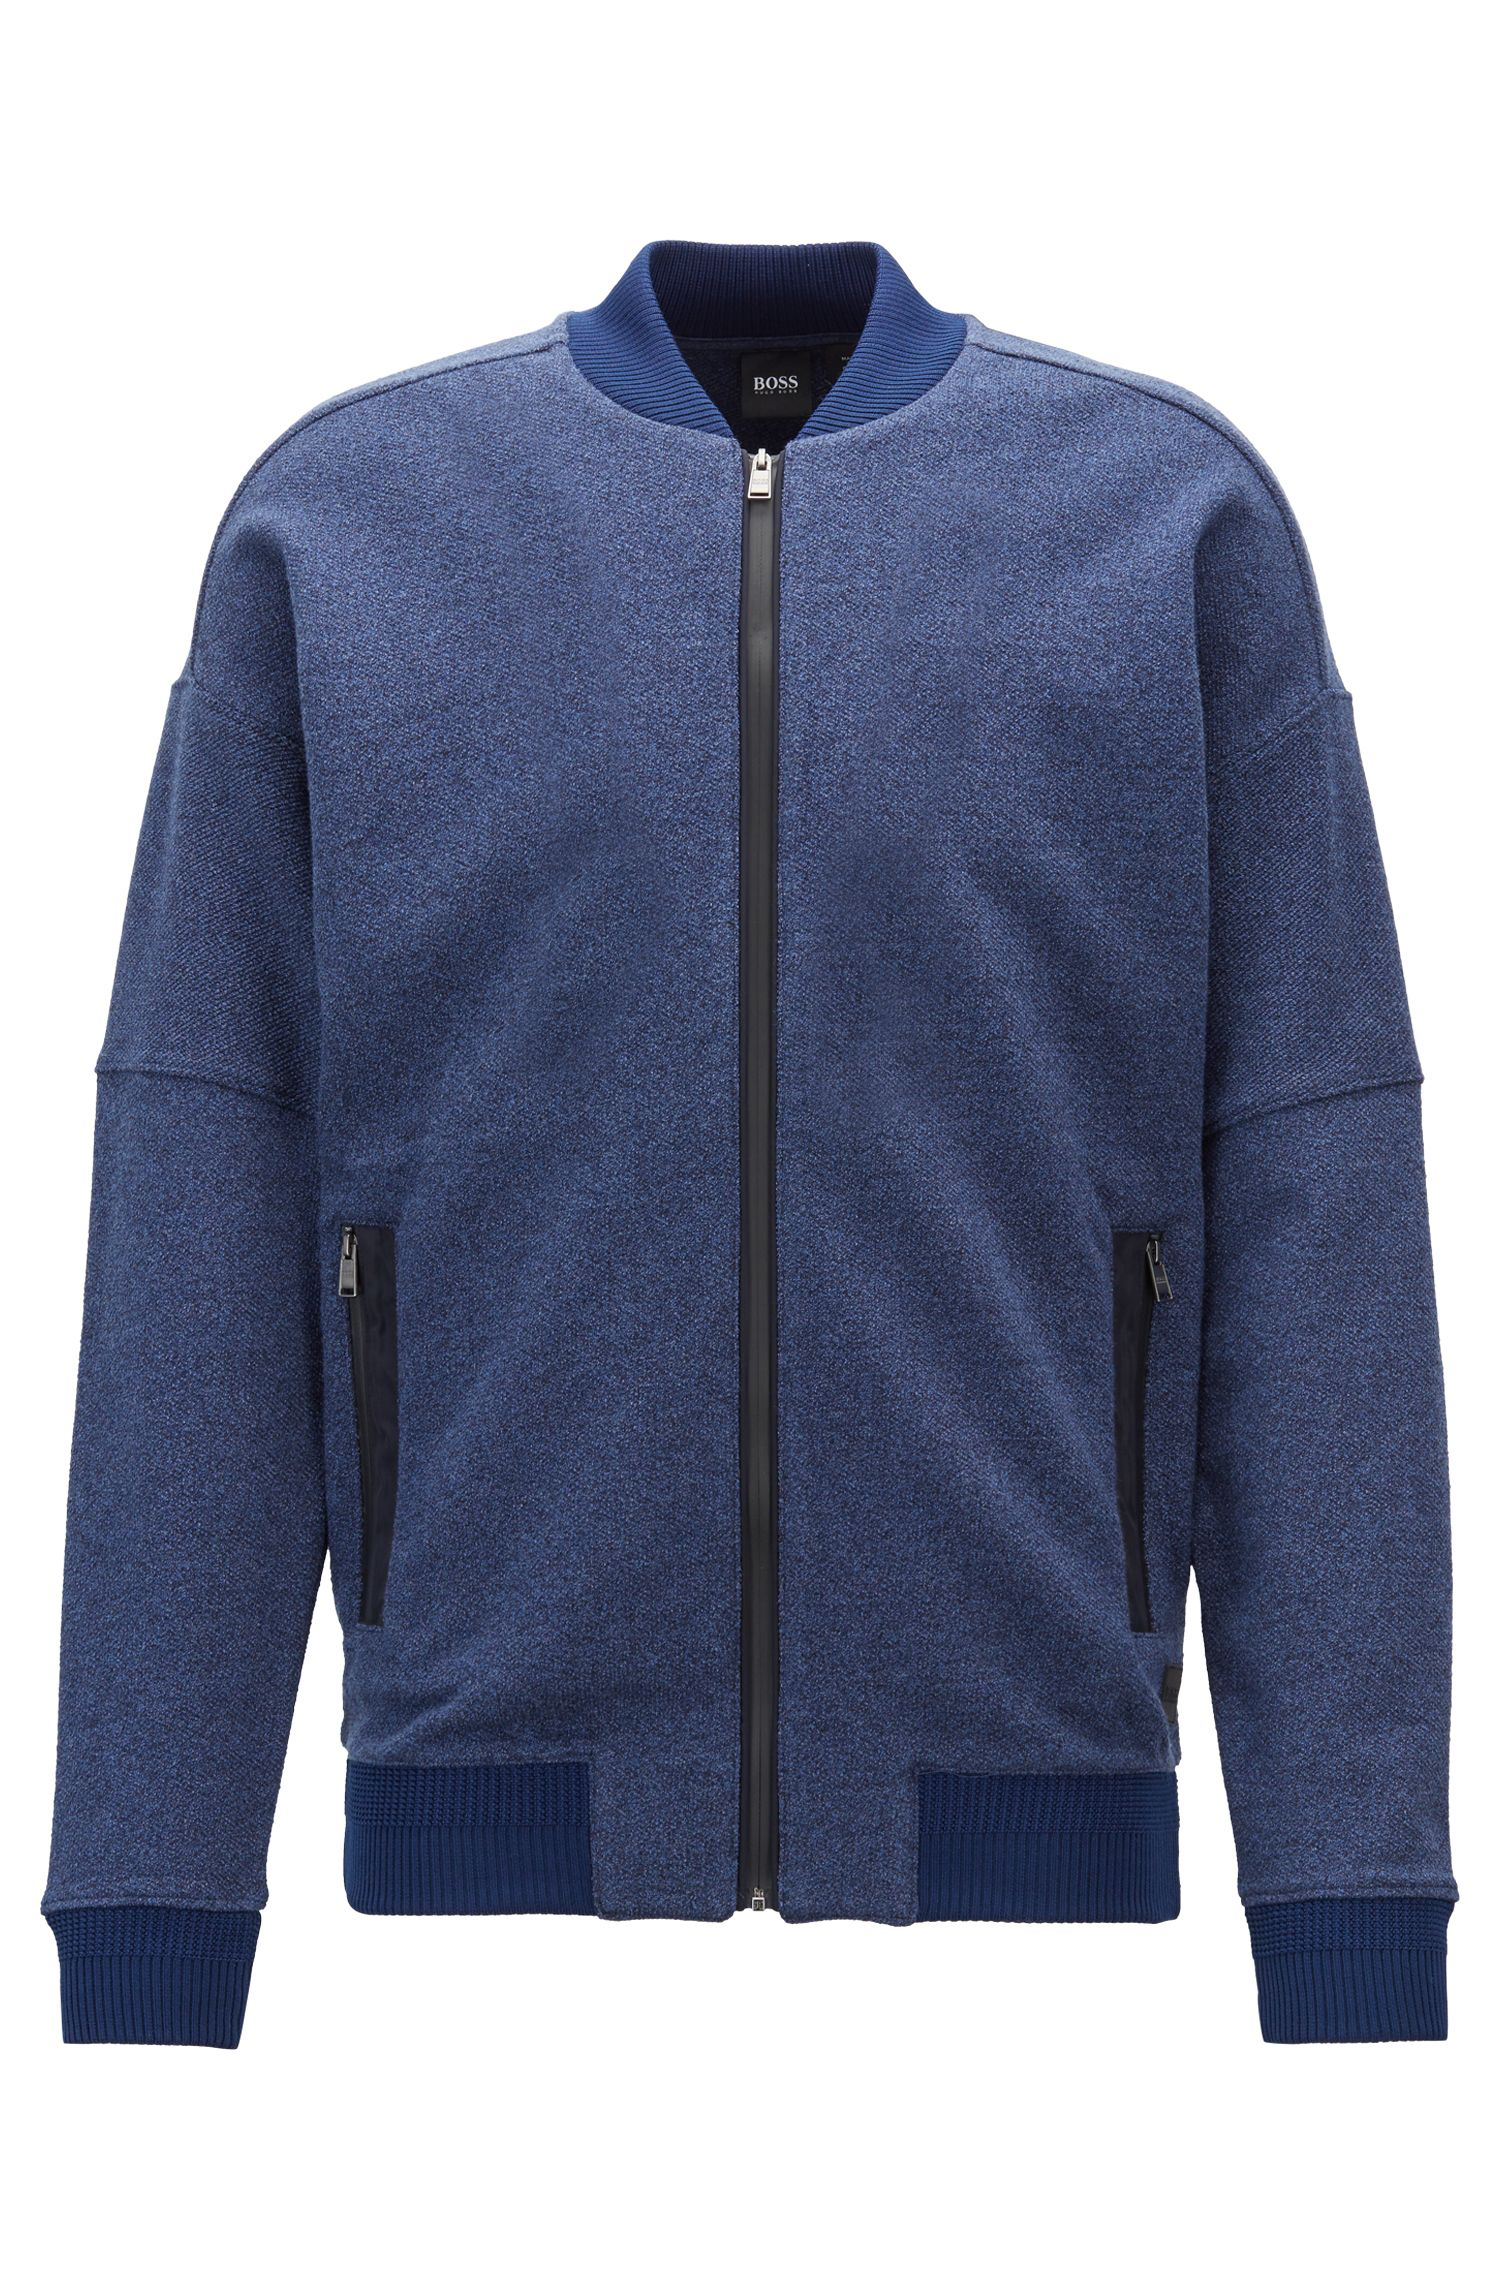 Sweatjacke aus meliertem Baumwoll-Terry in Denim-Optik